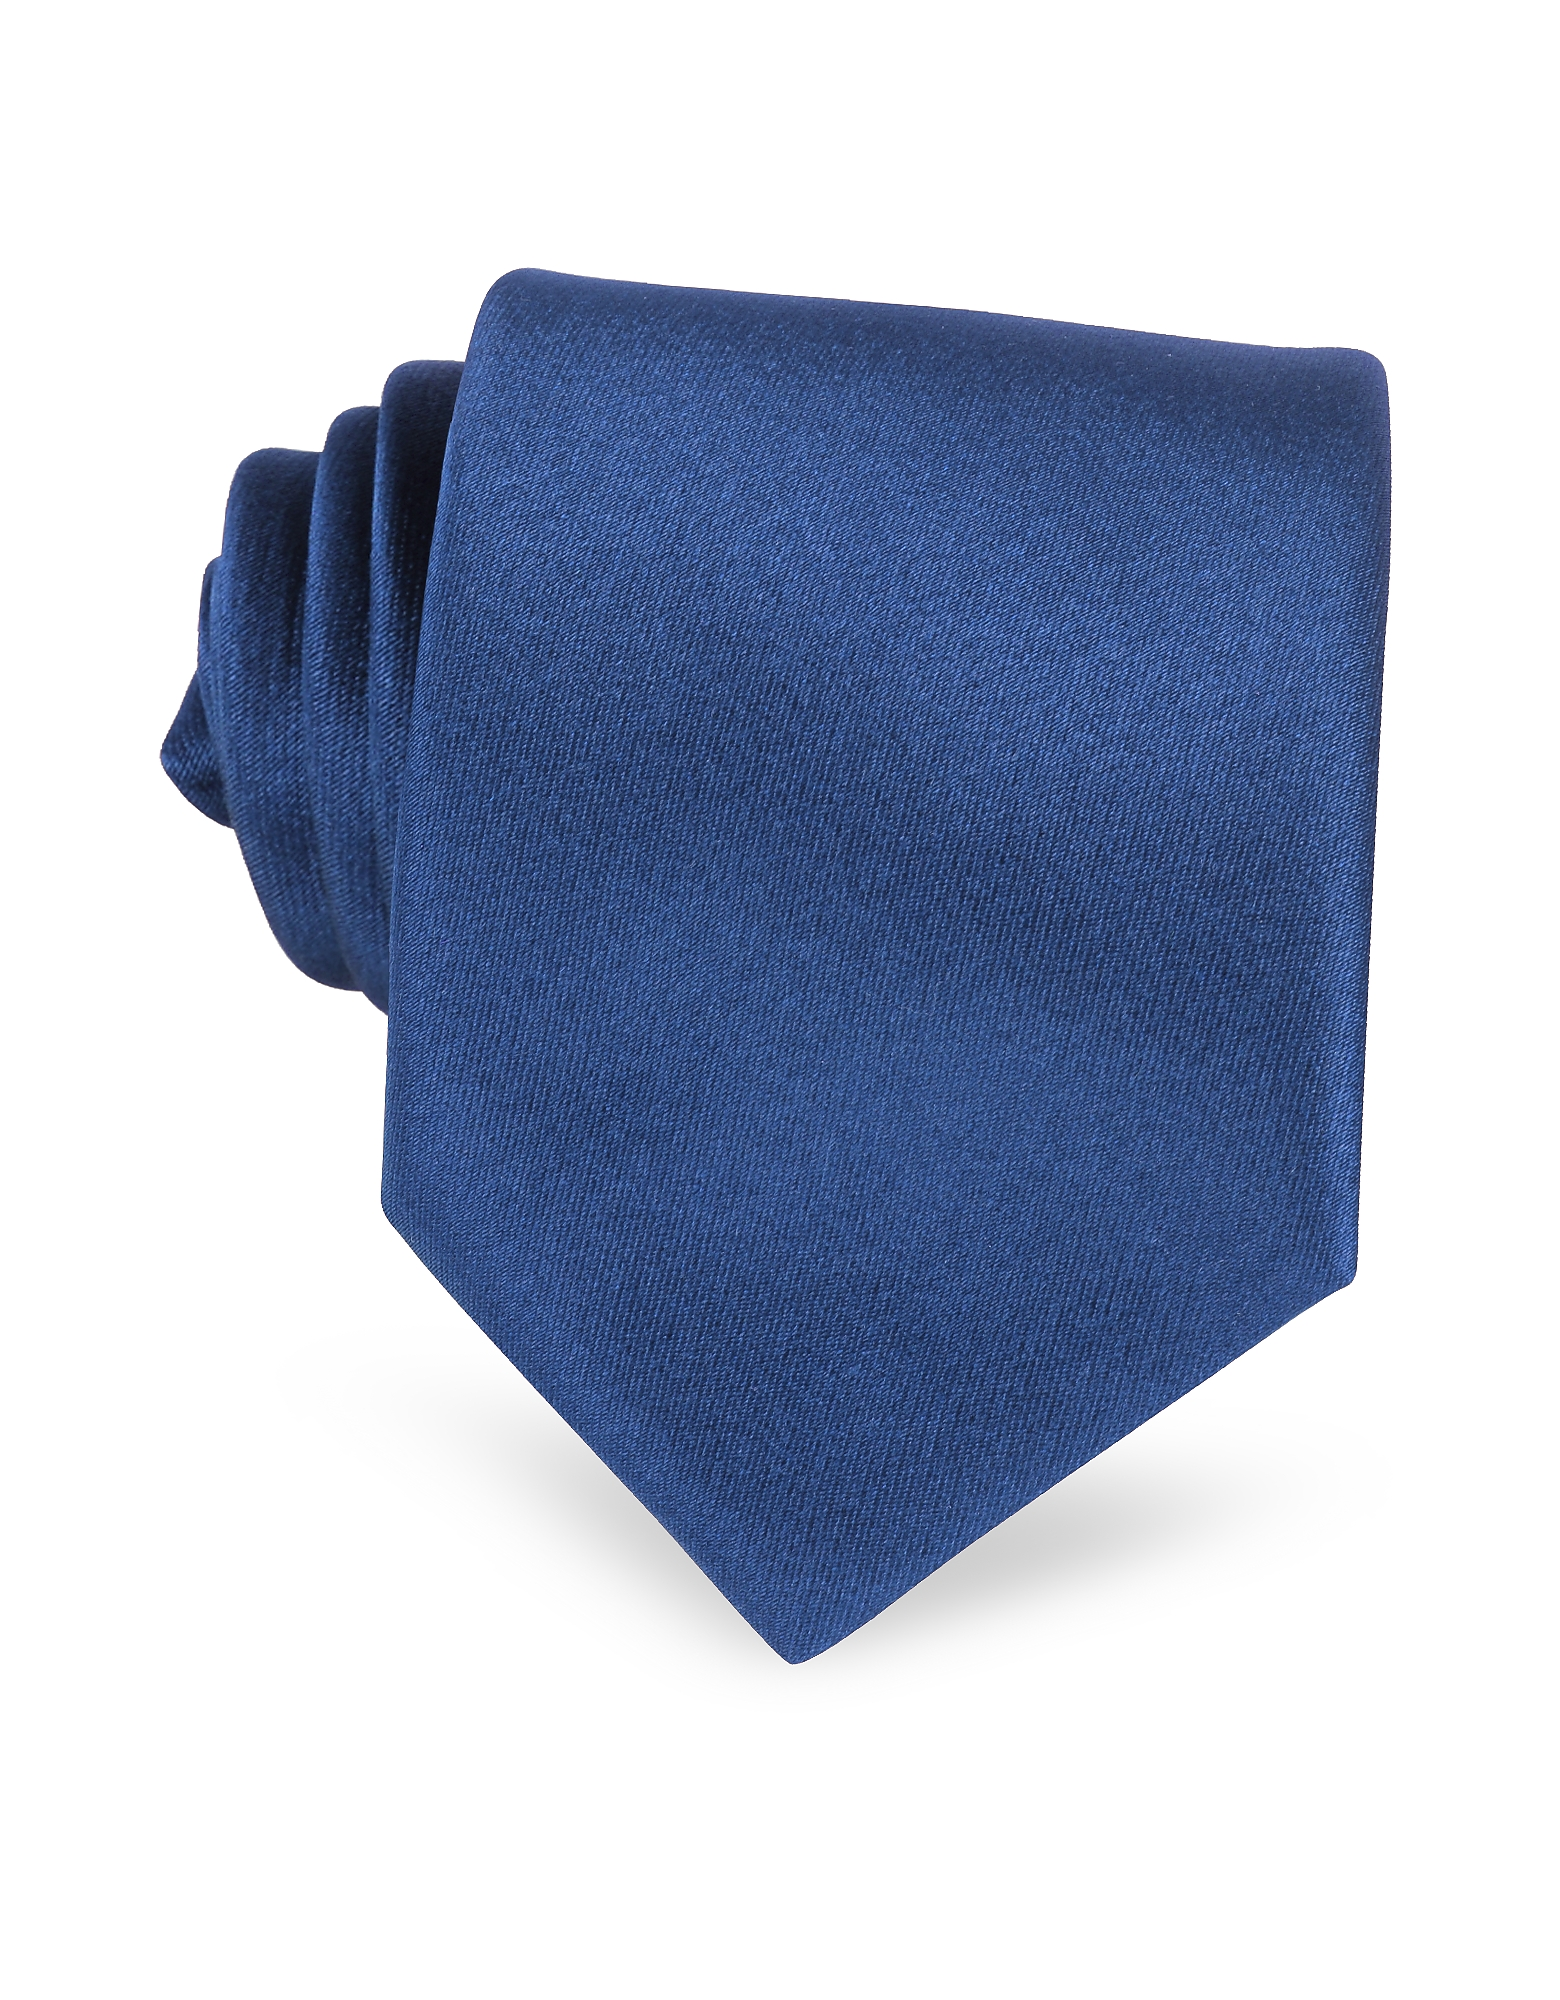 Solid Navy Blue Extra-Long Tie